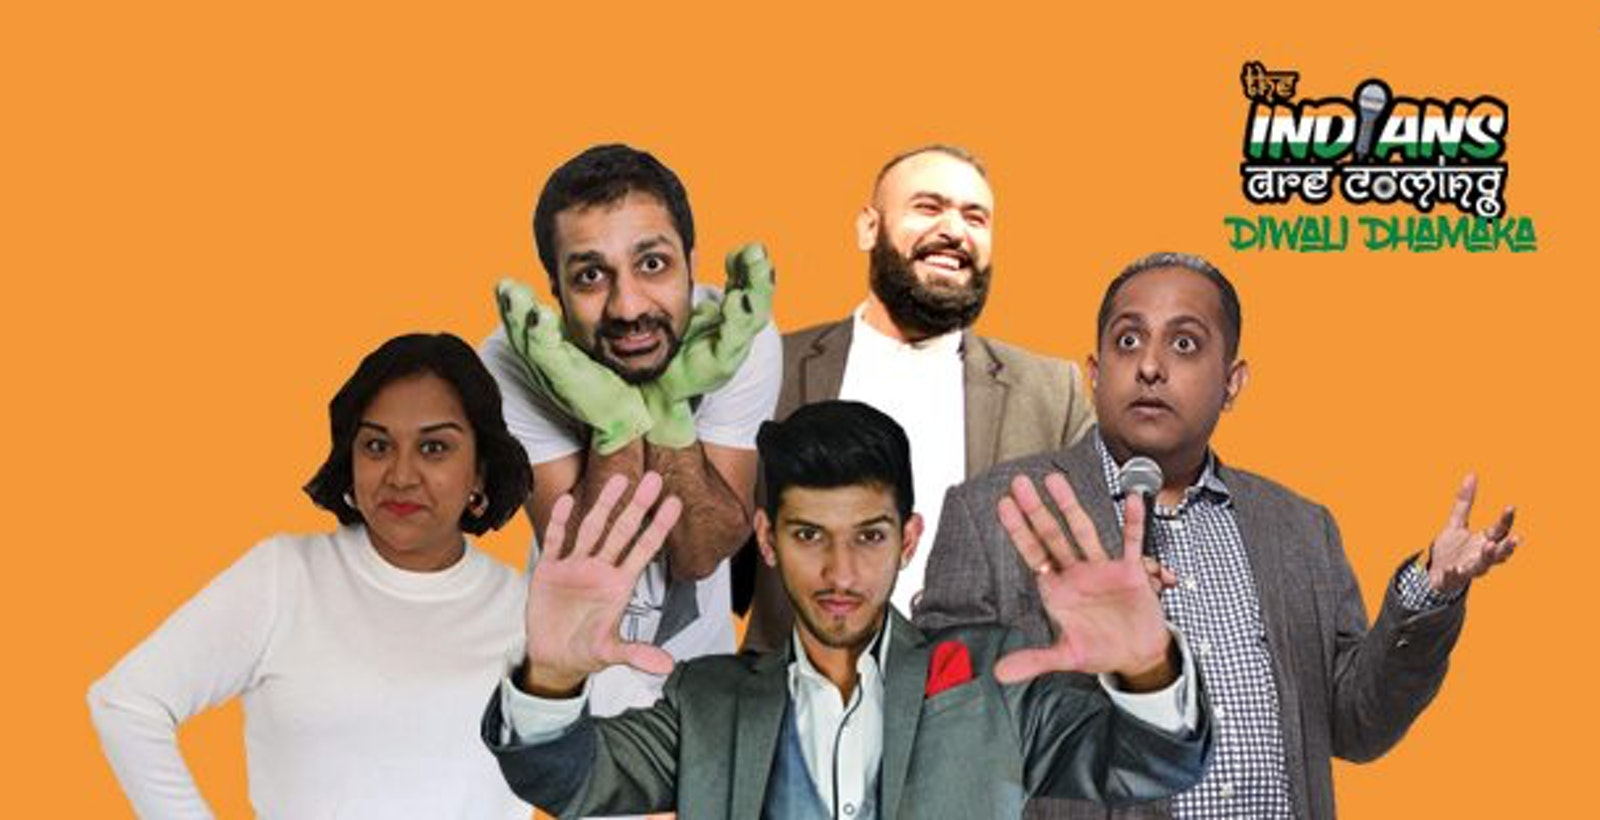 The Indians Are Coming : Diwali Dhamaka – Coventry ** Extra Show Added **